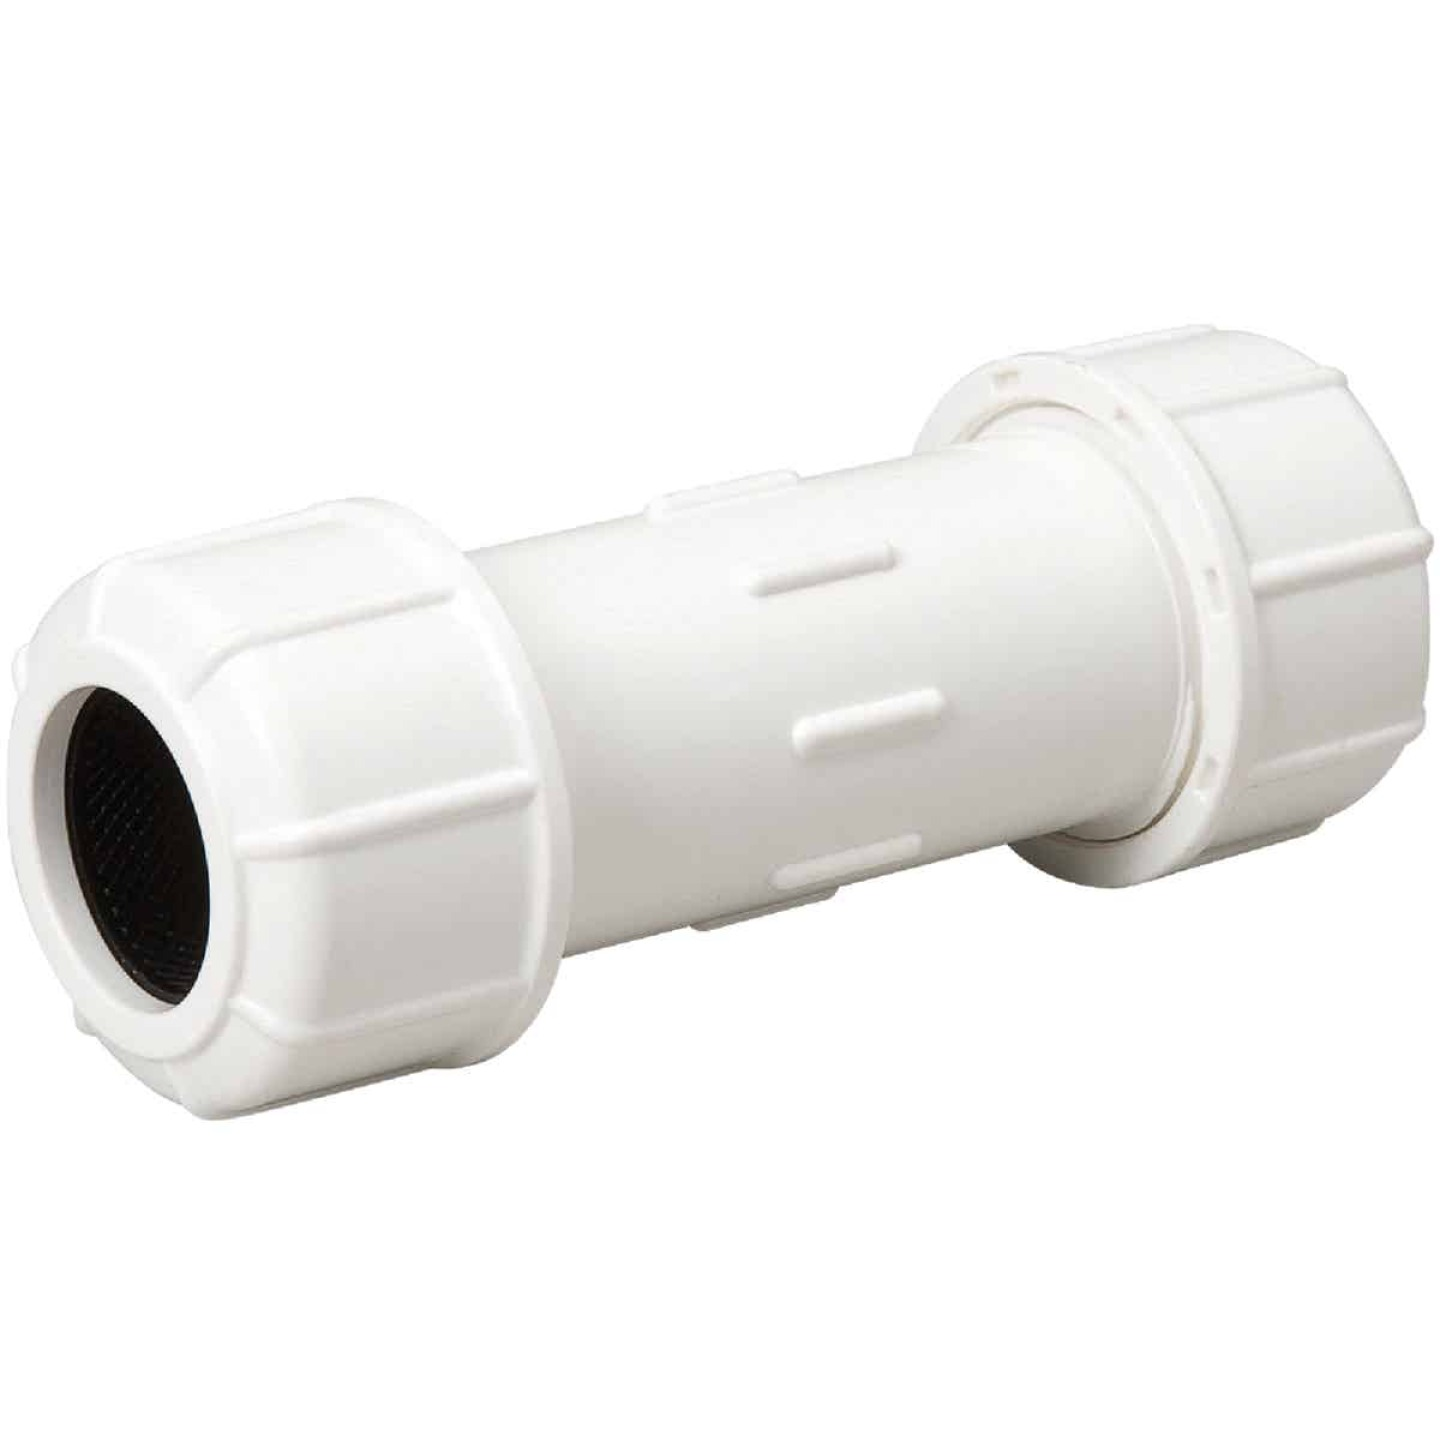 B & K 1 In. X 5-1/2 In. Compression PVC Coupling  Image 1